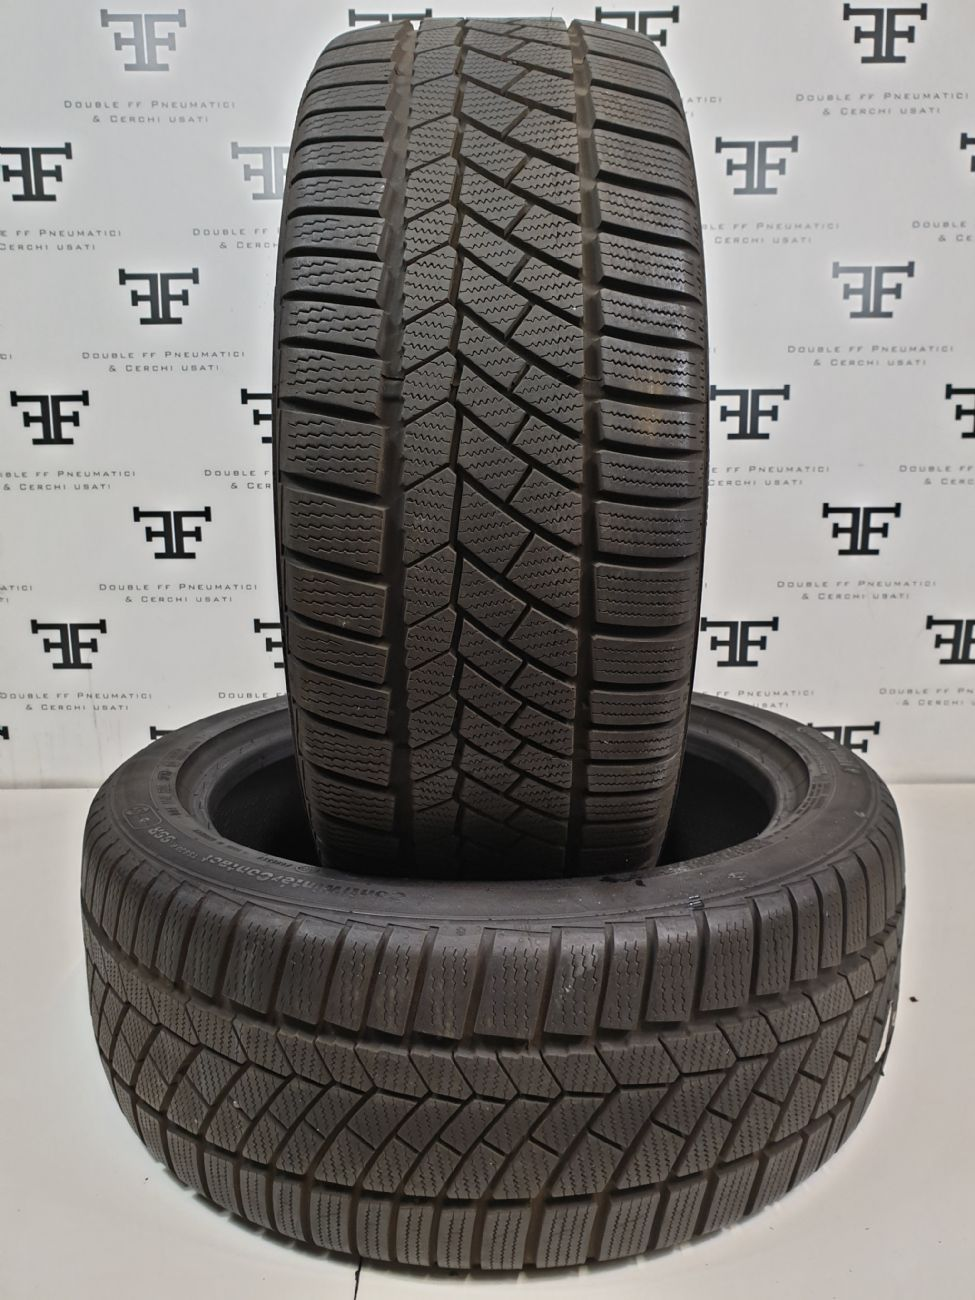 Pneumatici 225 45 R18 95 V CONTINENTAL ContiWINTERCONTACT TS830 P SSR invernale RUNFLAT usati 120€